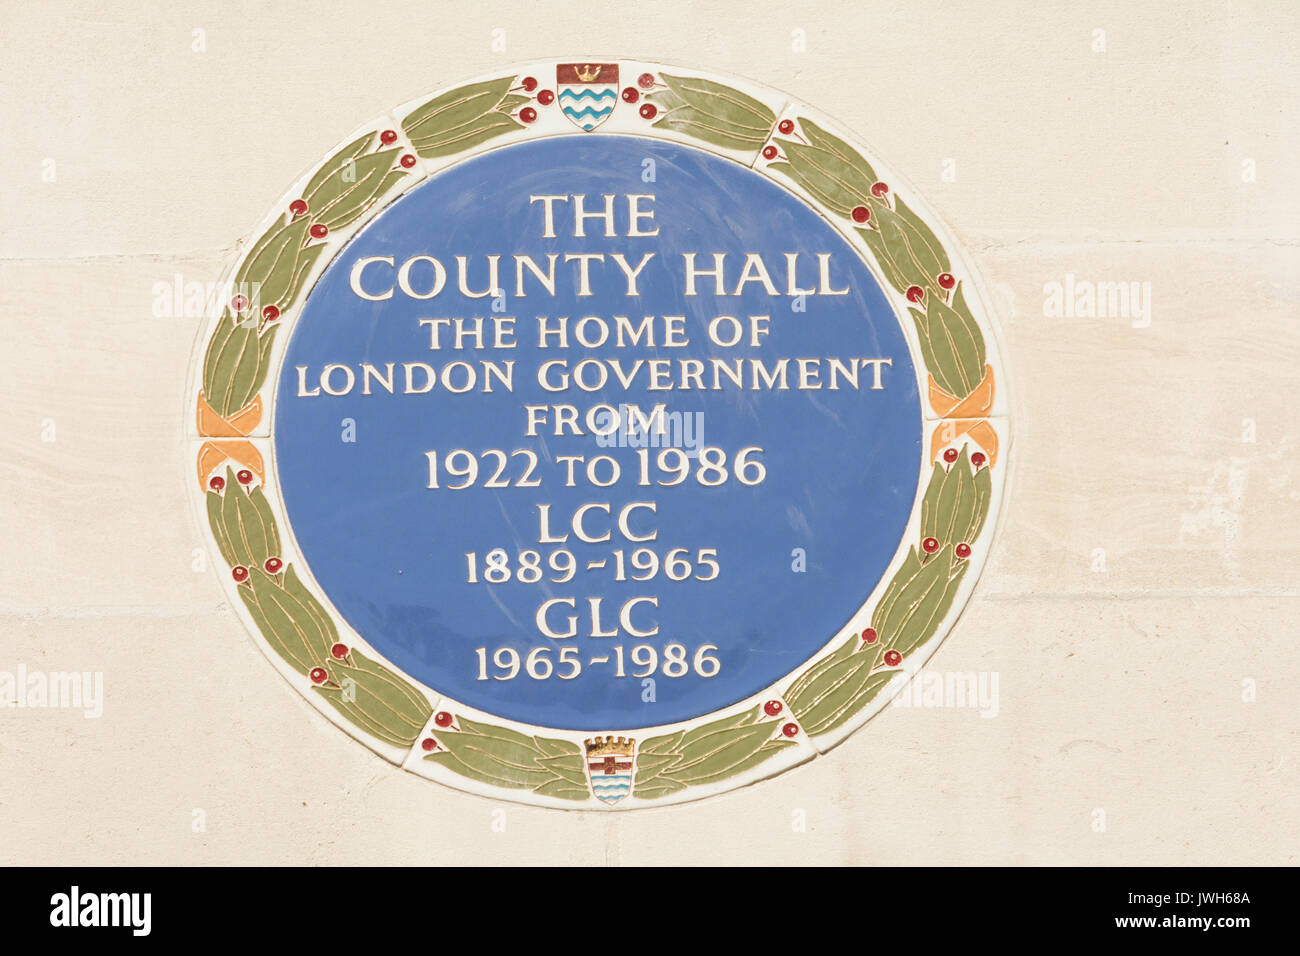 A Blue Plaque outside the former County Hall and home of London Local Government from 1922-1986. Stock Photo